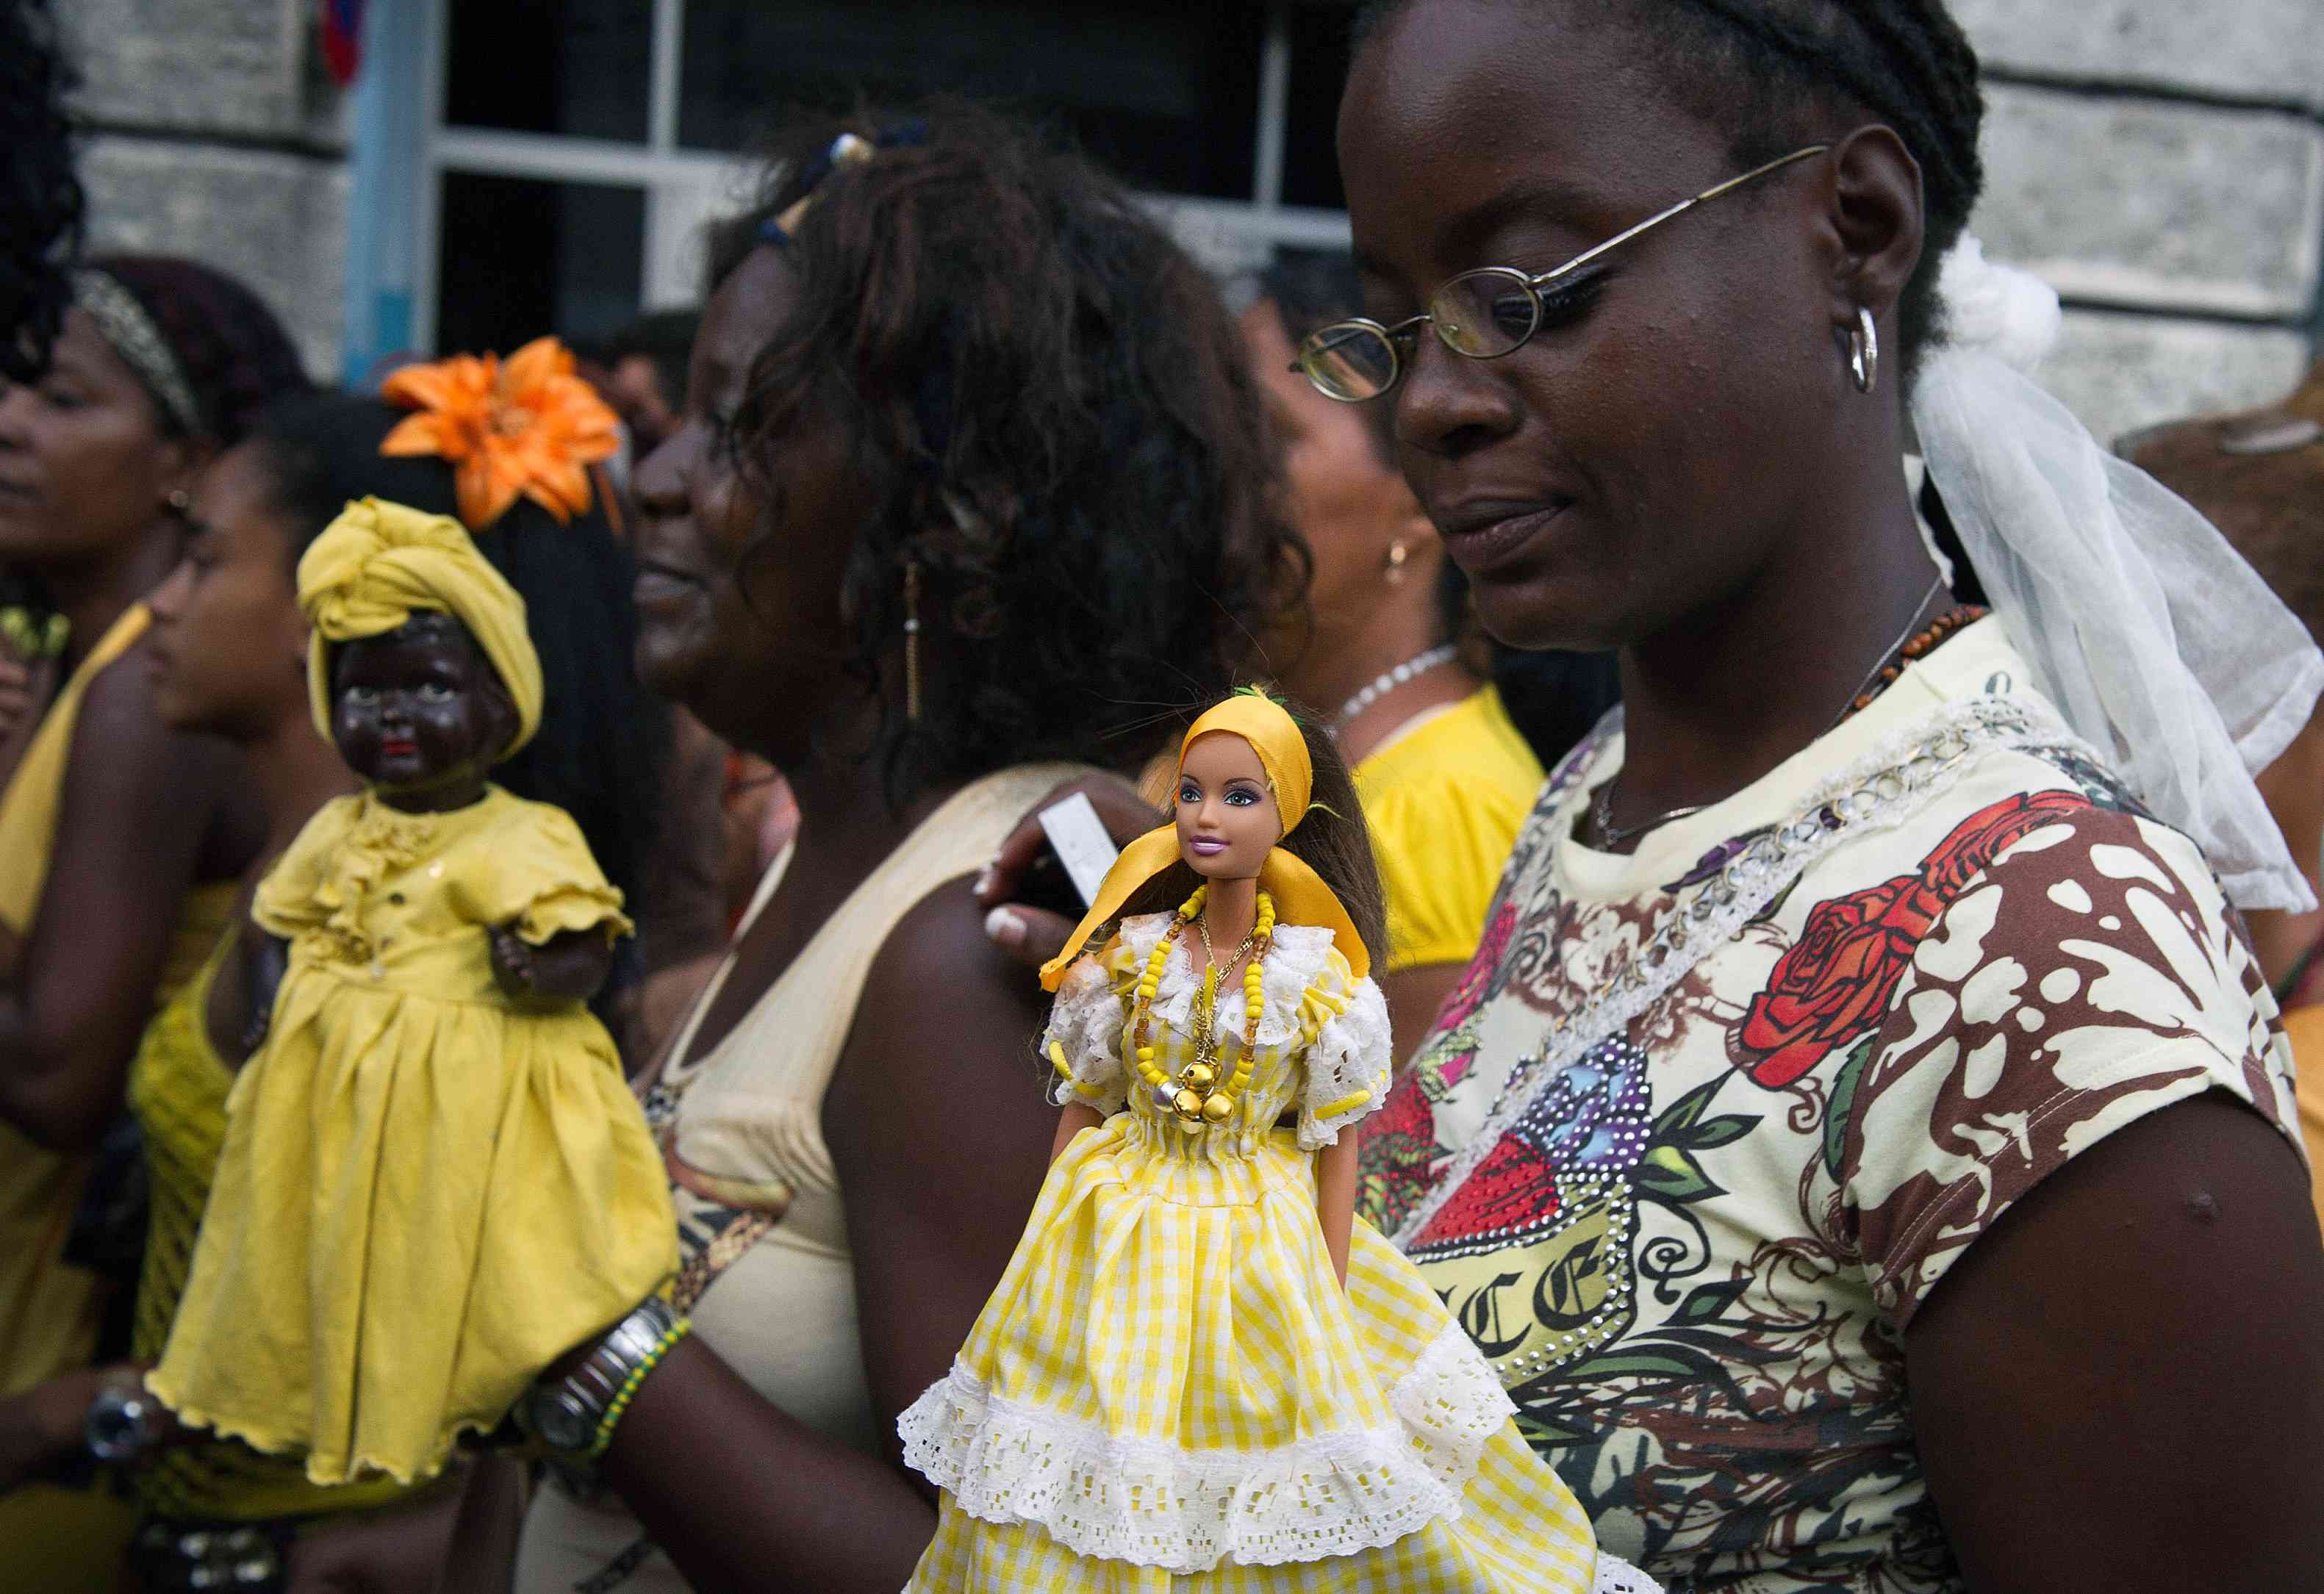 A group of Cuban women take part in the